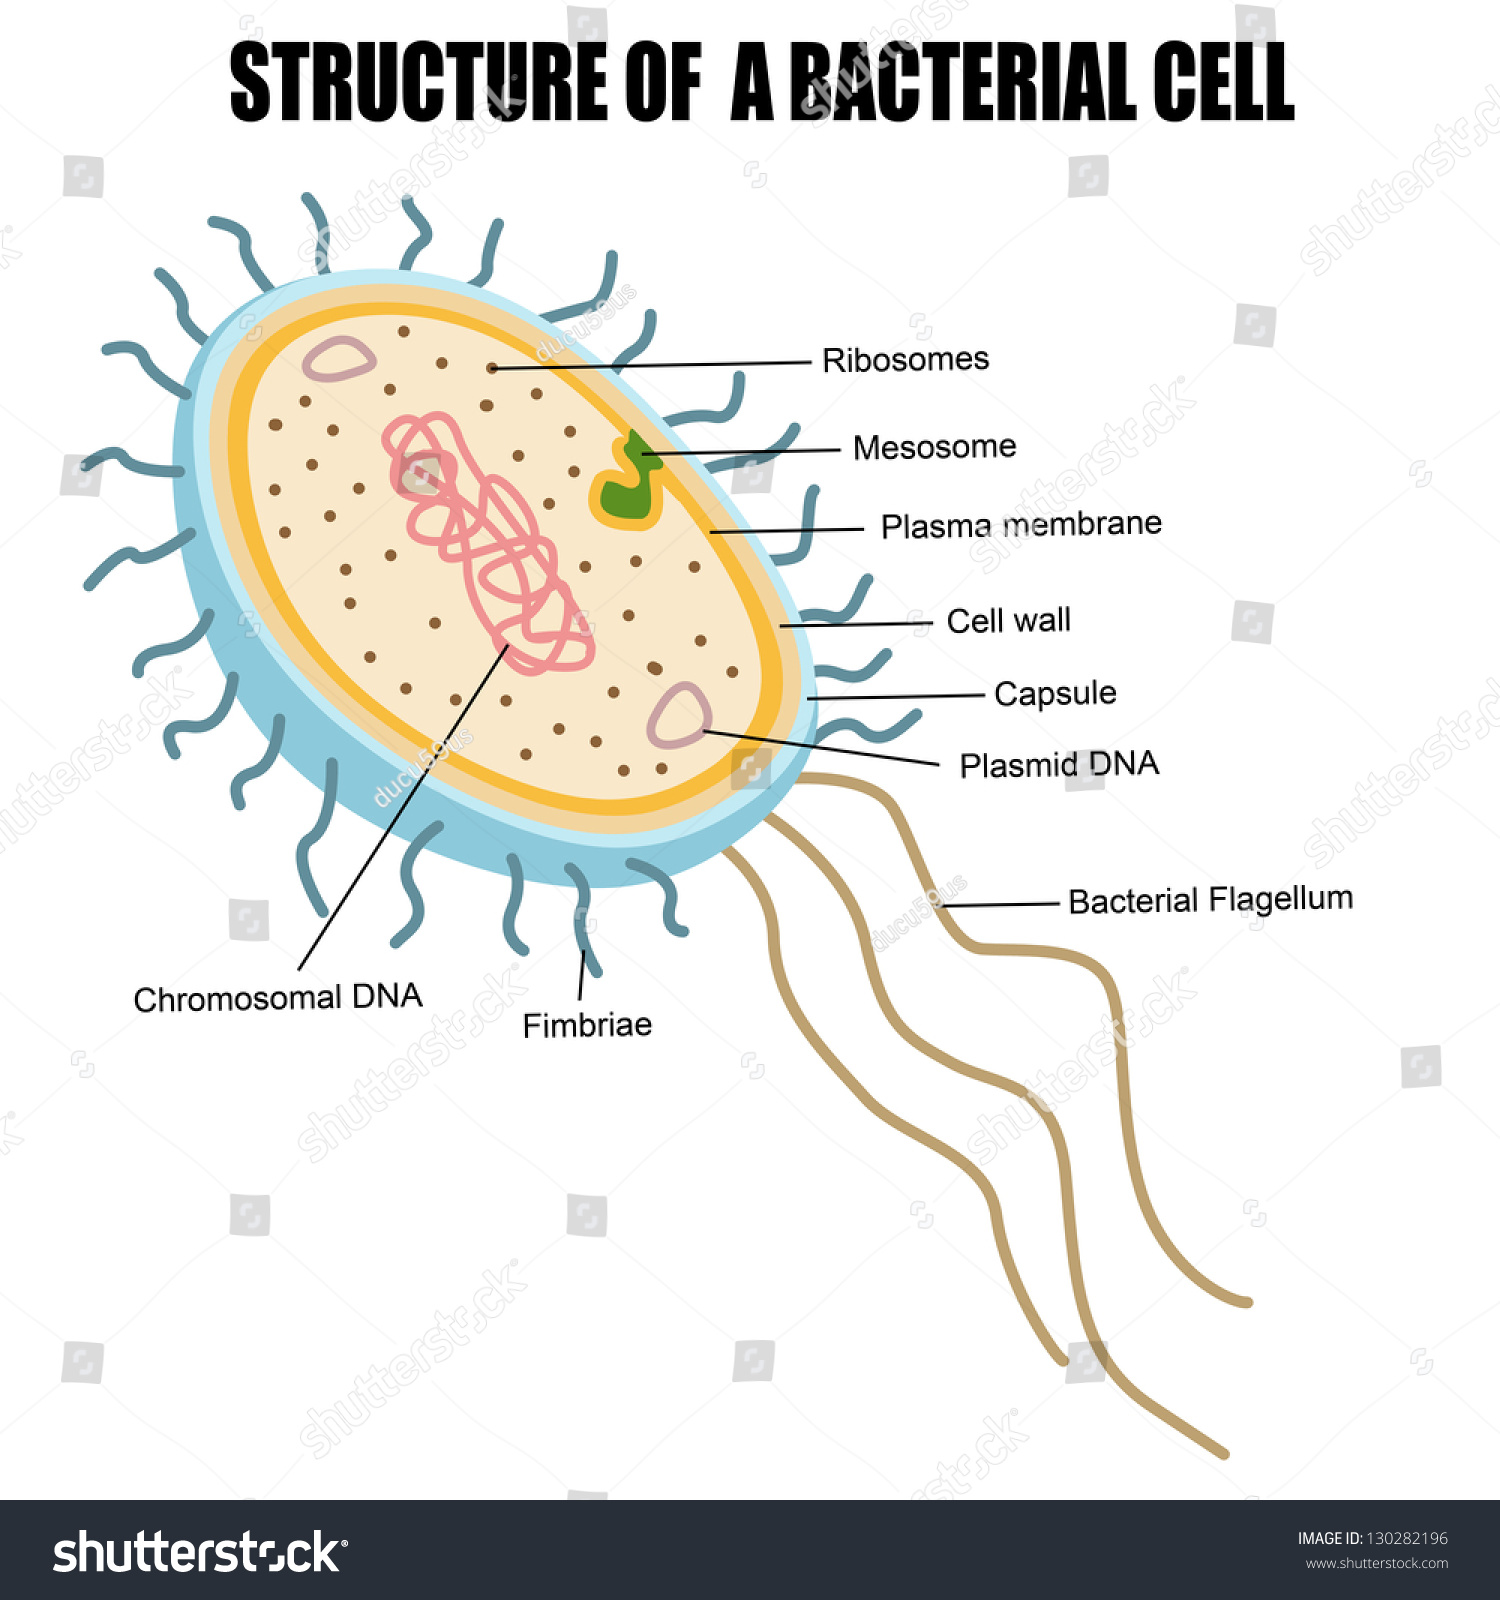 Structure Bacterial Cell Vector Illustration For Stock Circuits Circuitsymbols Jpg 646 Electrical Of A Basic Medical Education Clinics